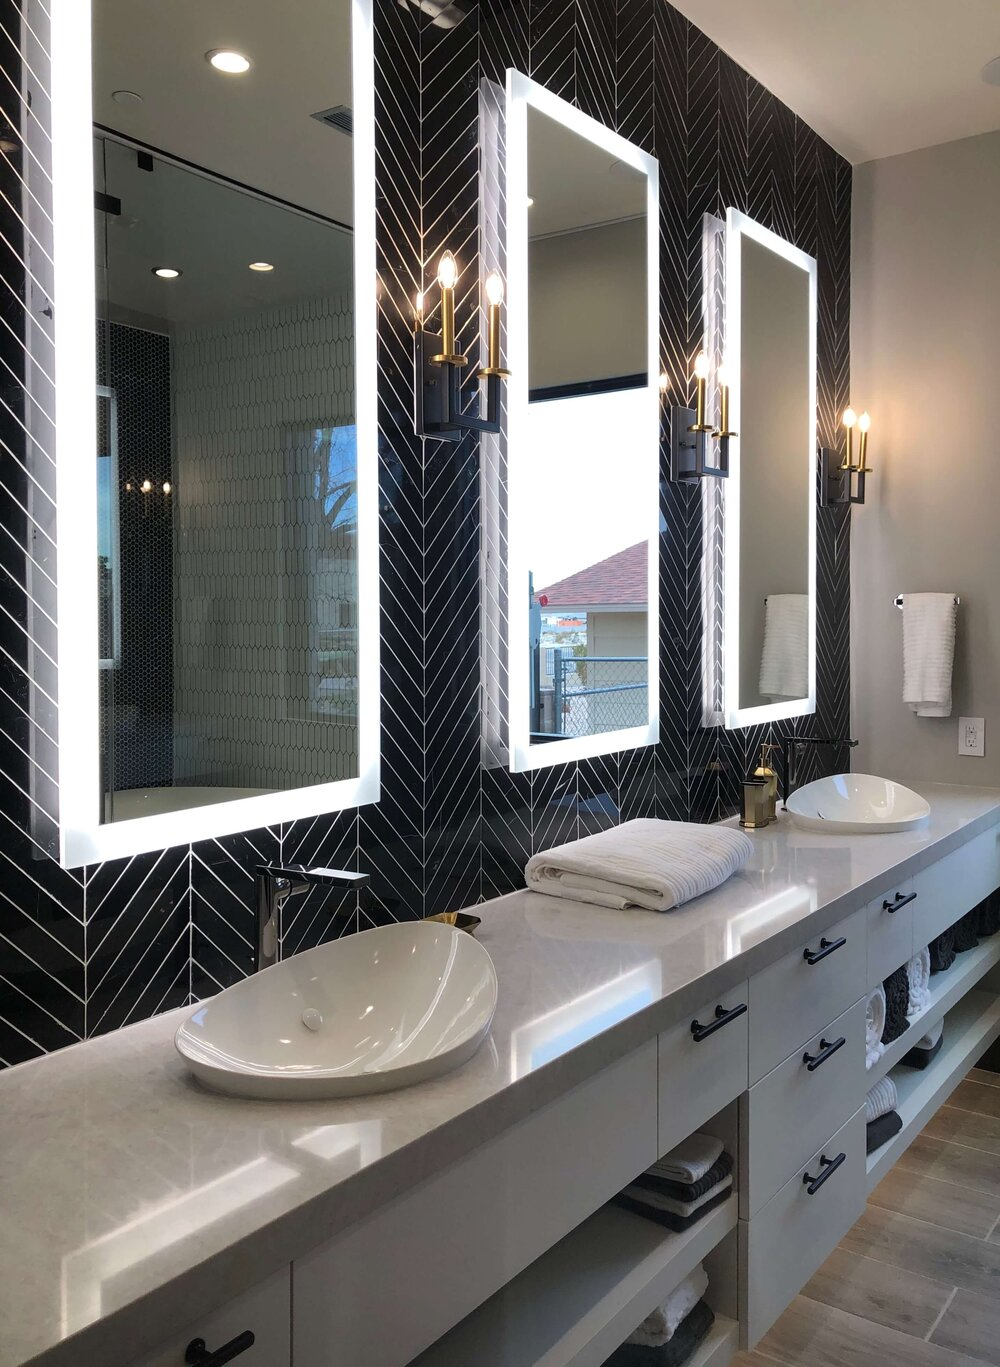 Long vanity with tile wall and floating lit mirrors in The New American Remodel. TNAR | #remodeling #remodel #masterbathideas